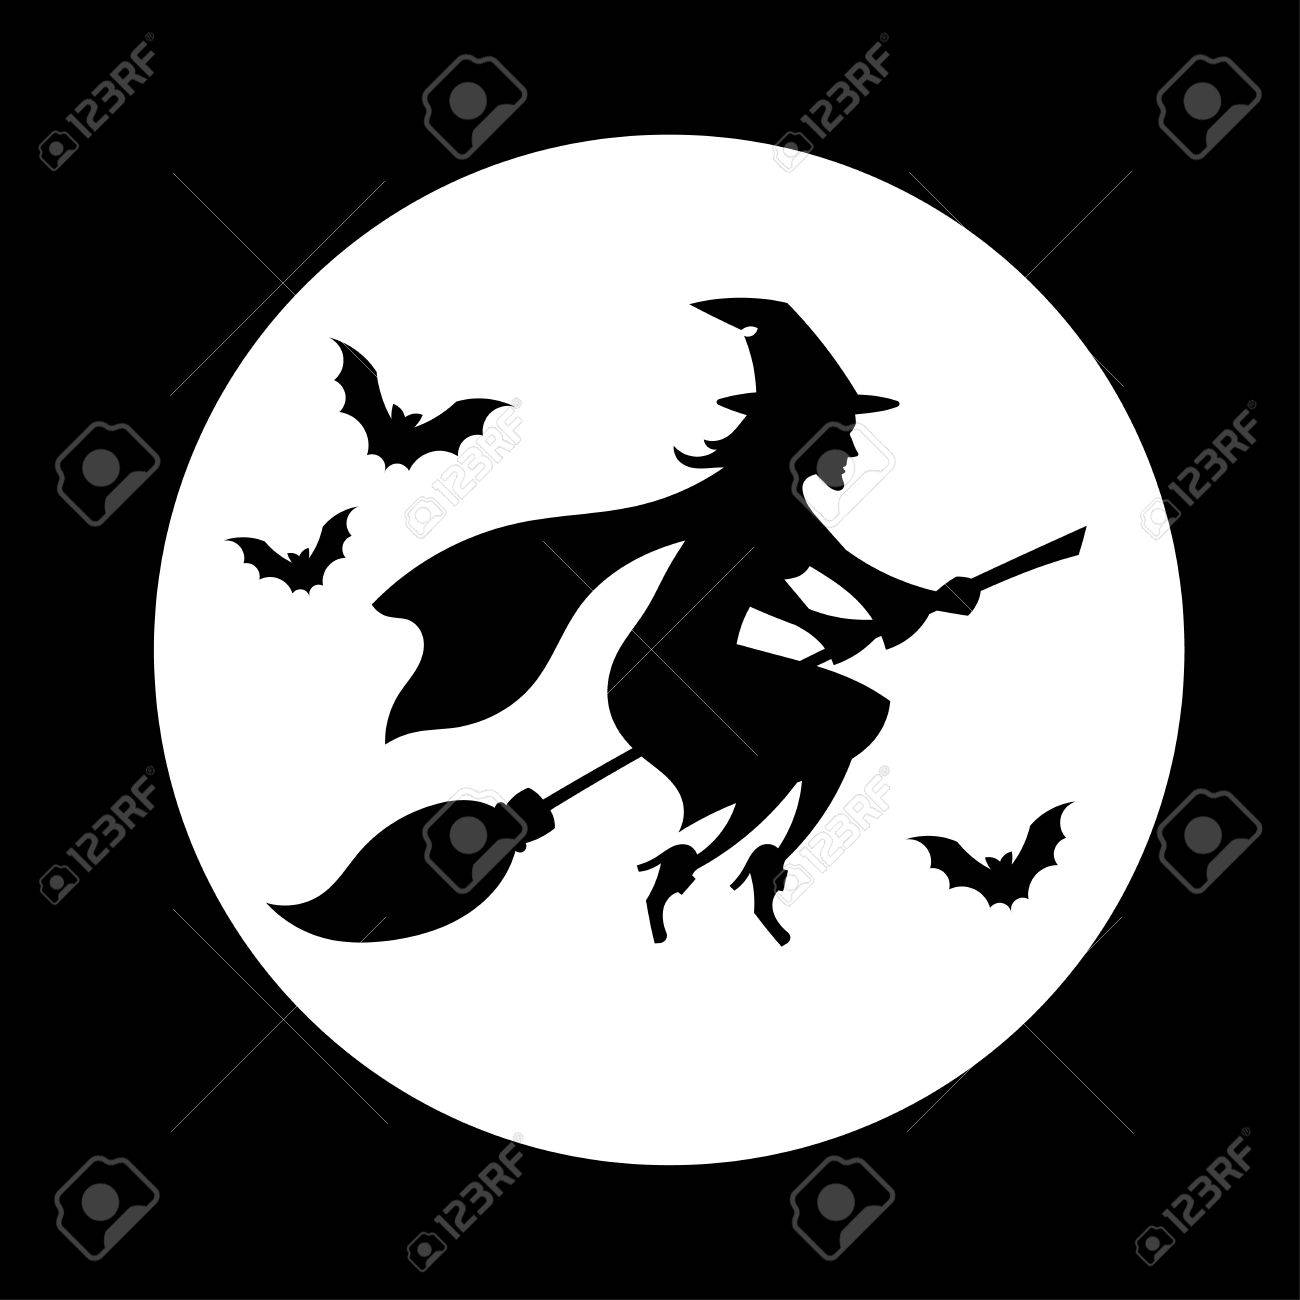 witch flying over the moon halloween symbol stock vector 44875754 - Flying Halloween Witch